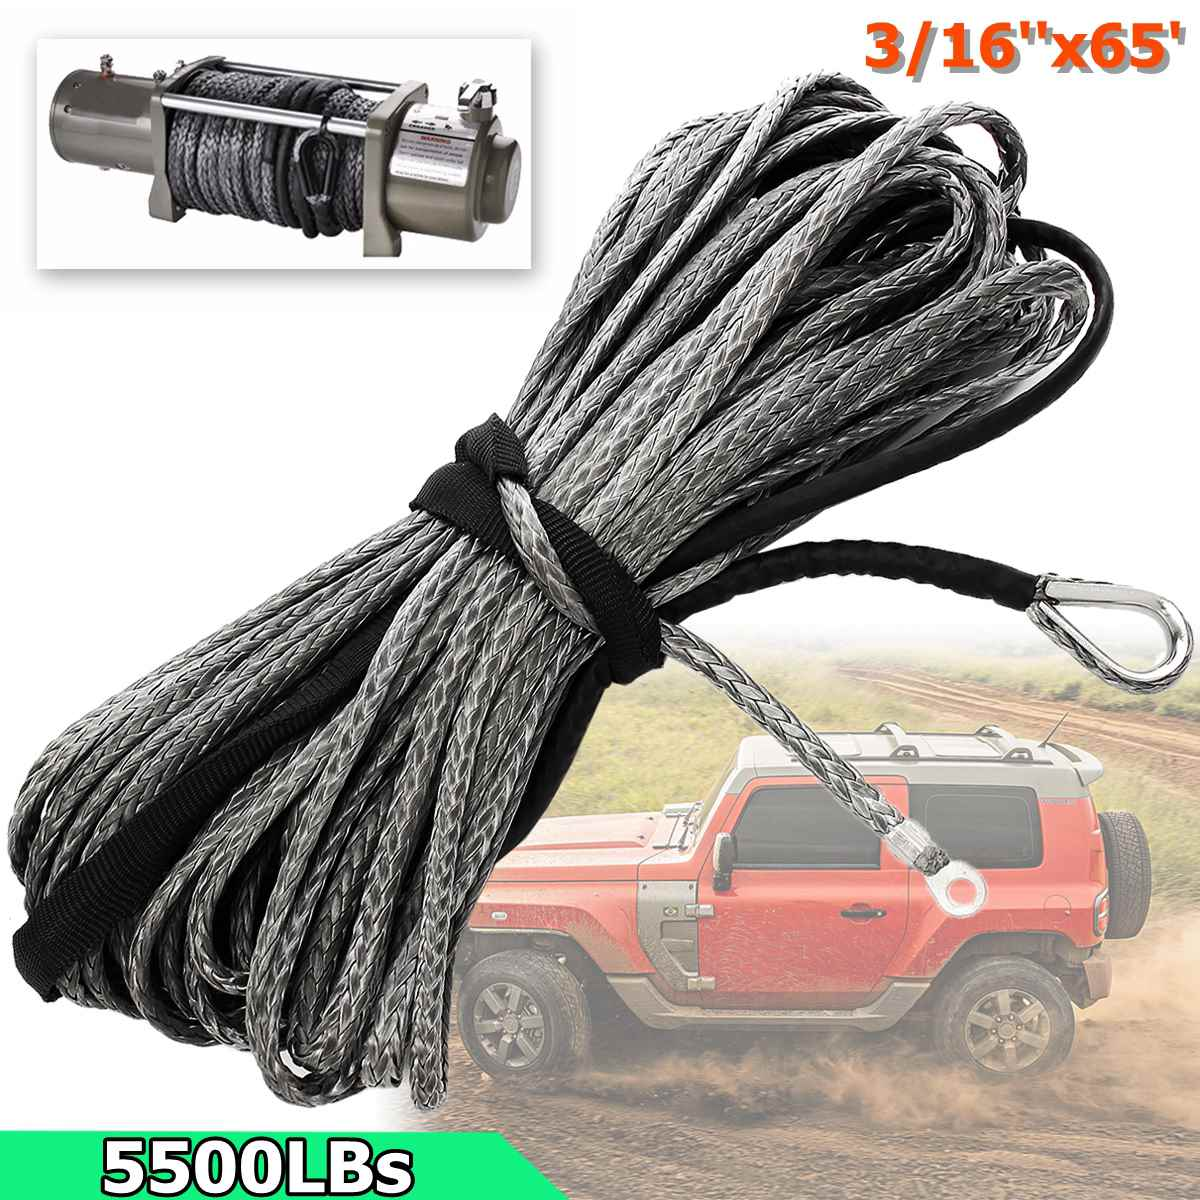 3/16 x 50' Synthetic Fiber Winch Line Cable Rope 5500 LBs Sheath ATV UTV Offorad 5mm*19.5m Gray Synthetic mitomycin alkaloids synthetic studies